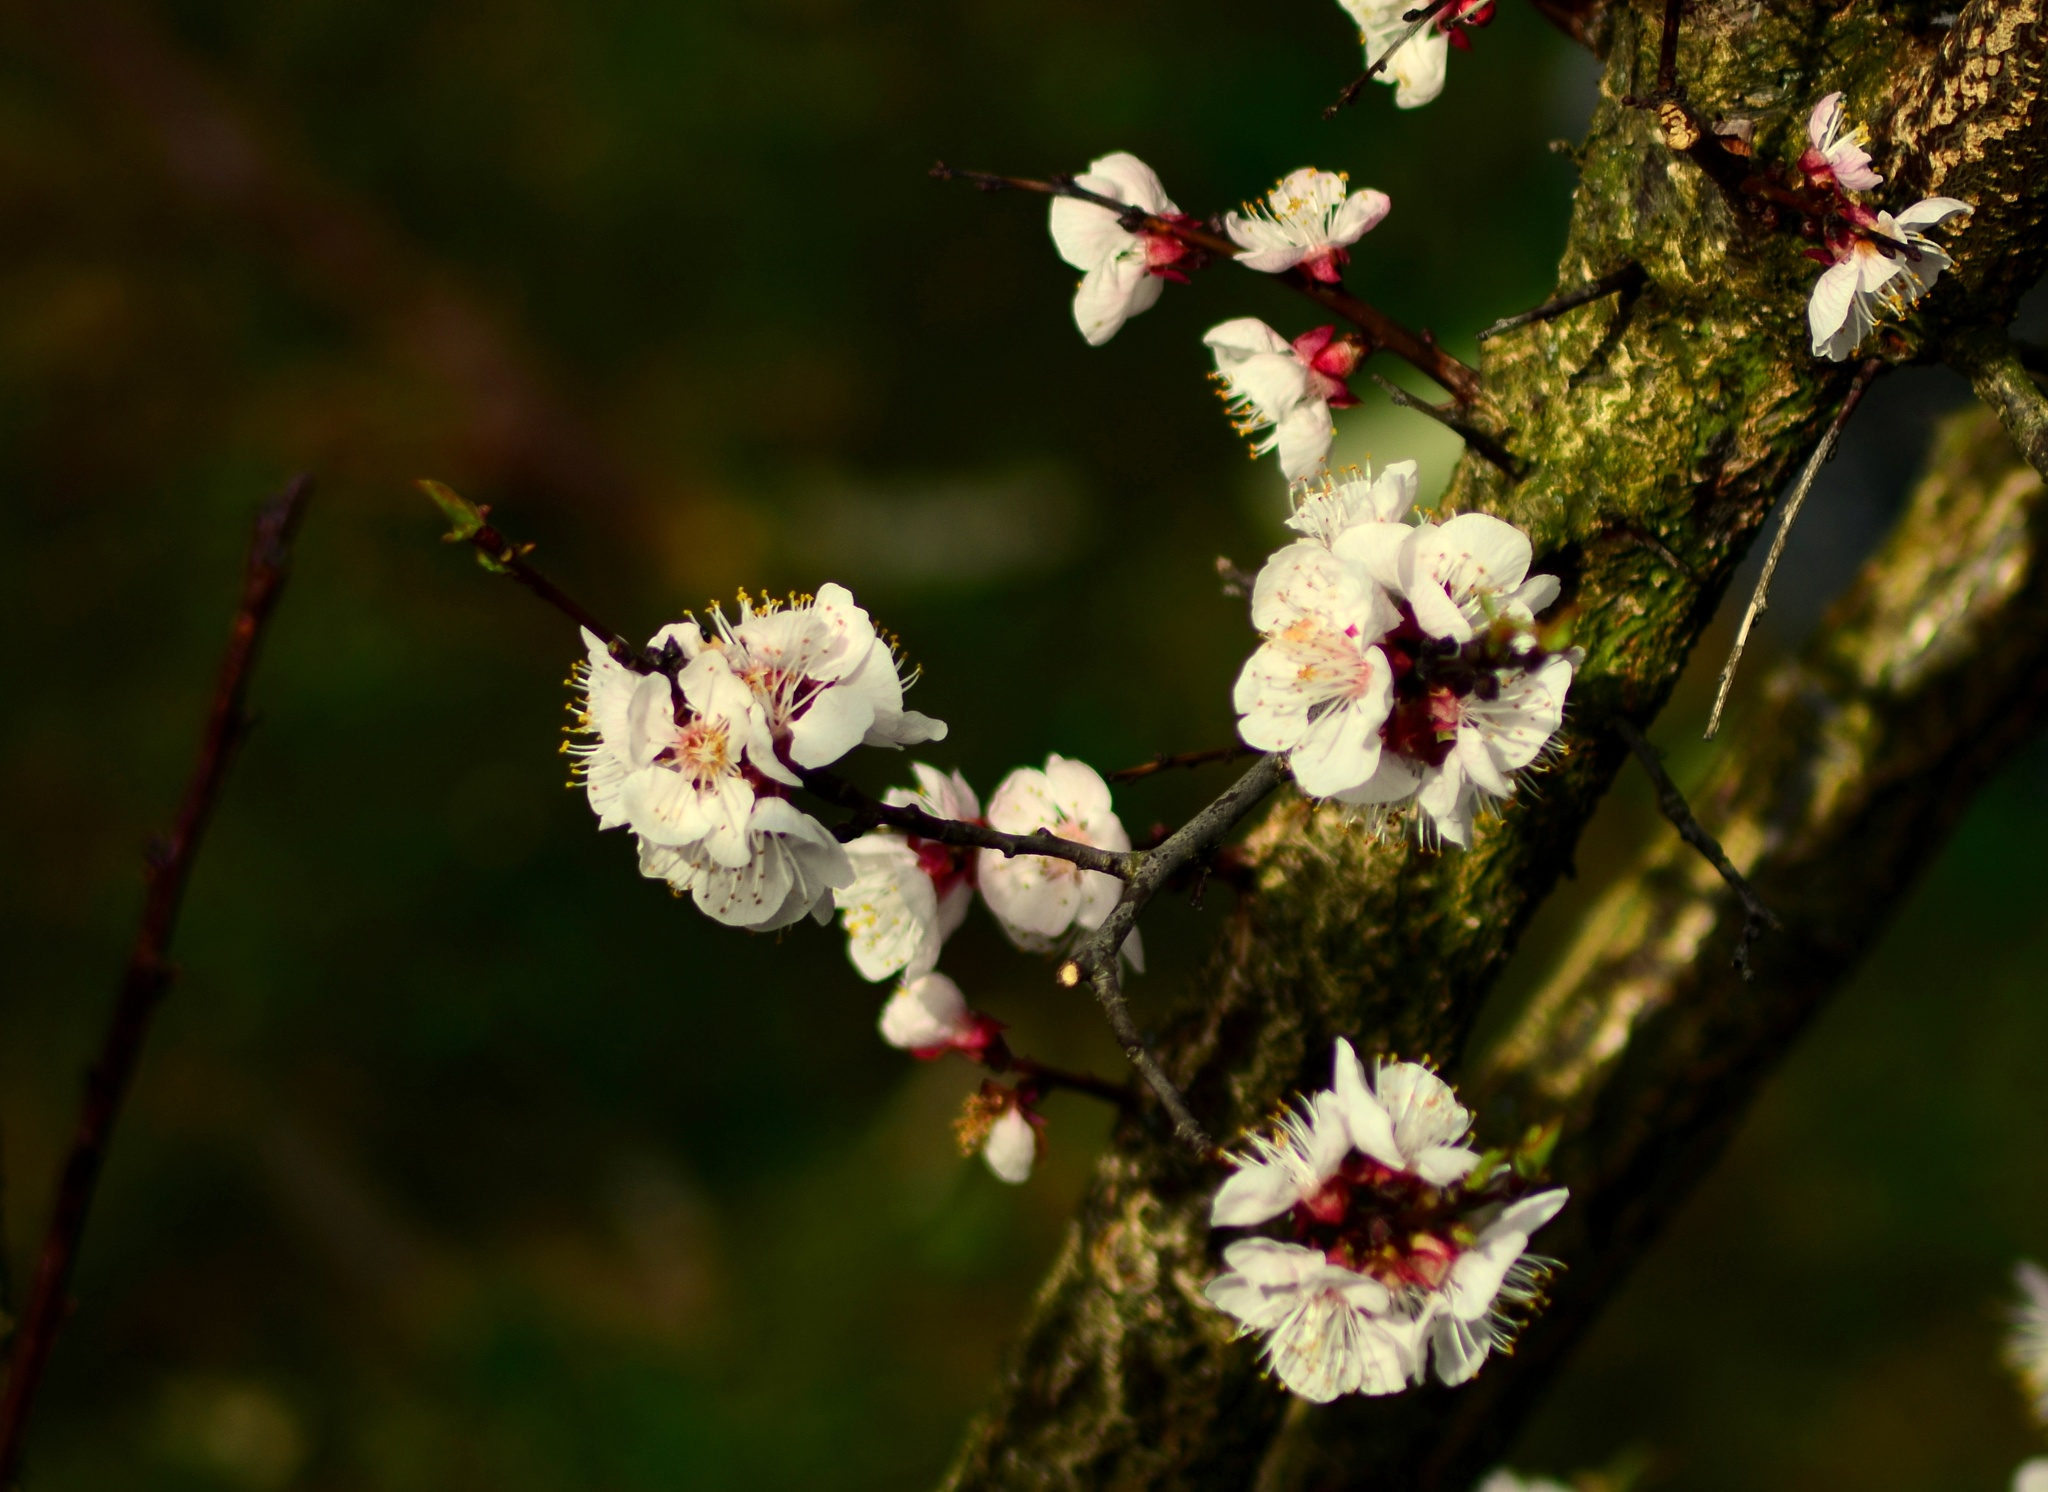 Spring glory by Stoica Emilian